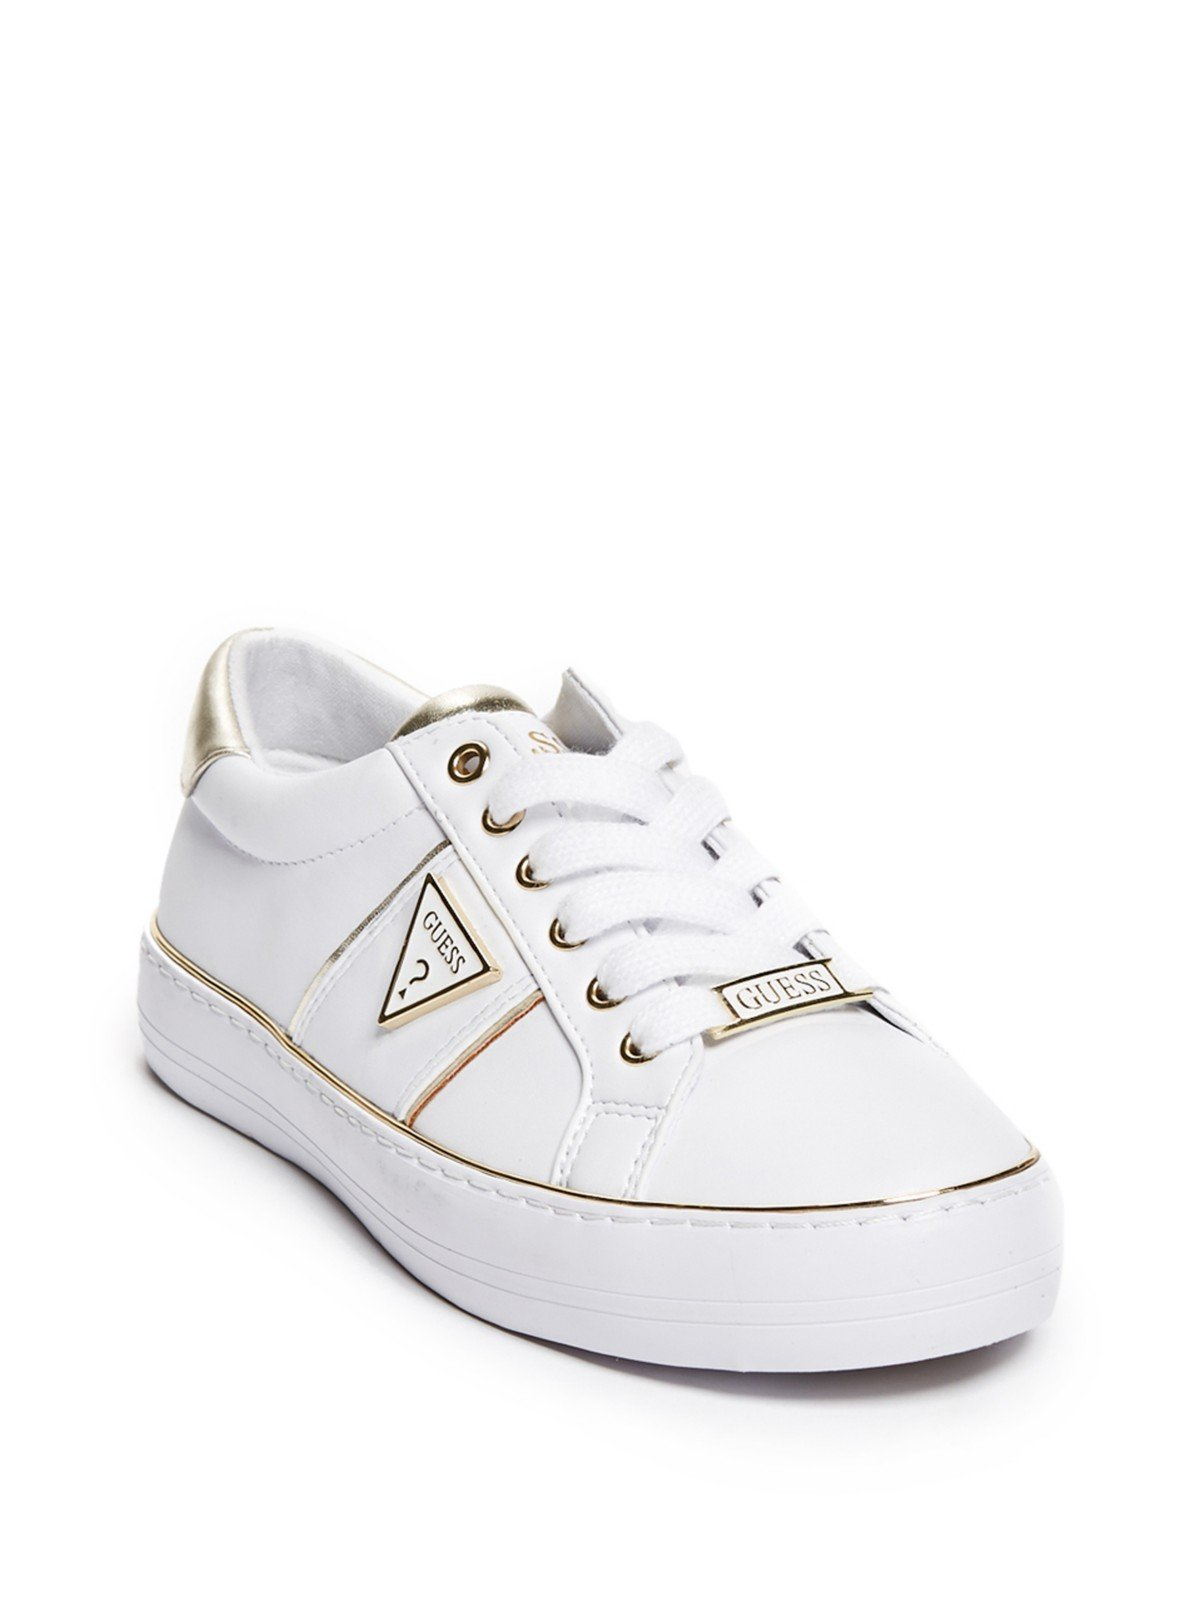 GUESS Factory Women's Gilda Logo Metallic Trim Low-Top Sneakers